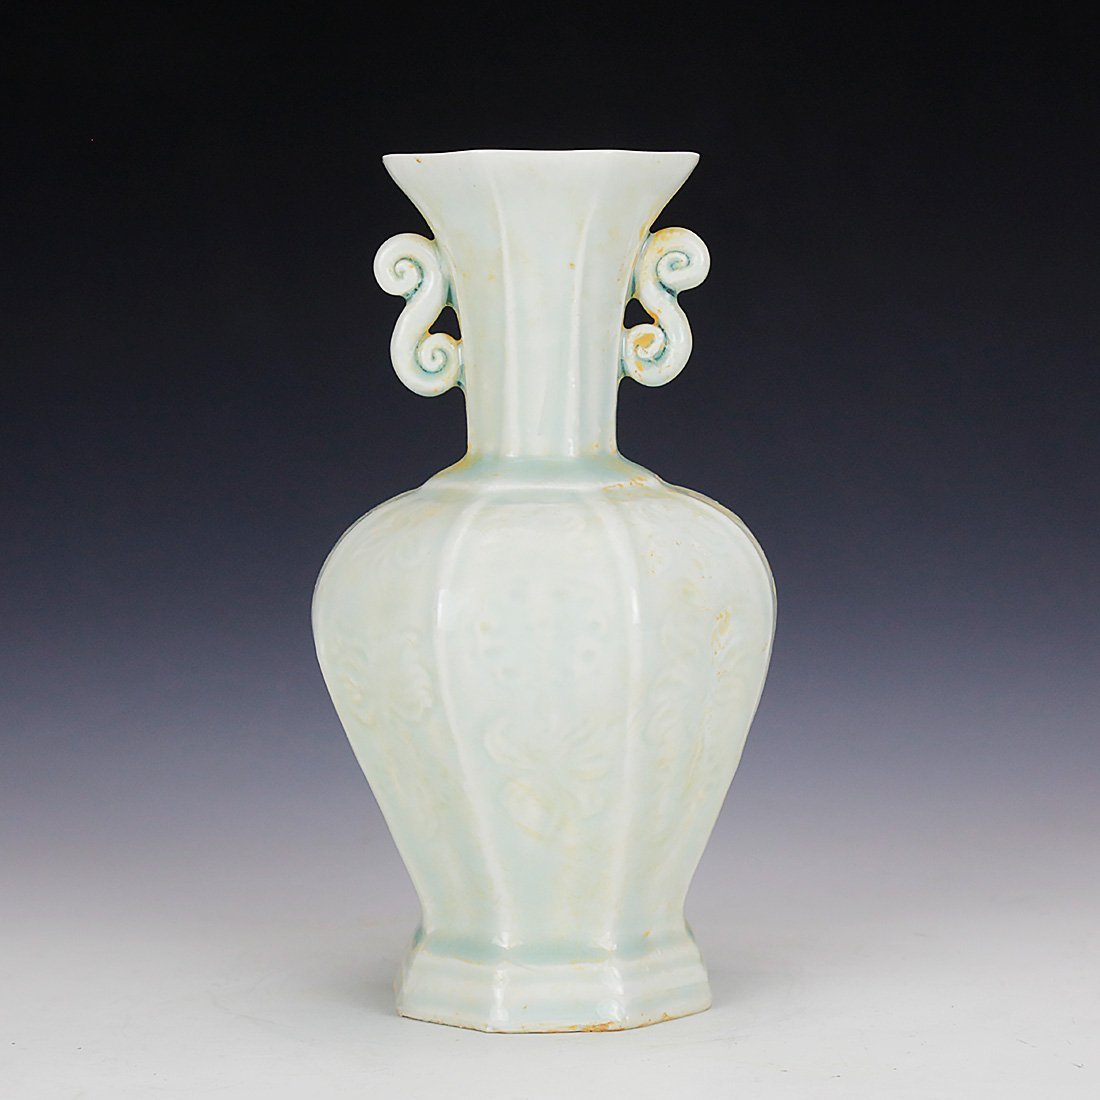 Celadon vase in the Song Dynasty 13 Century - 5